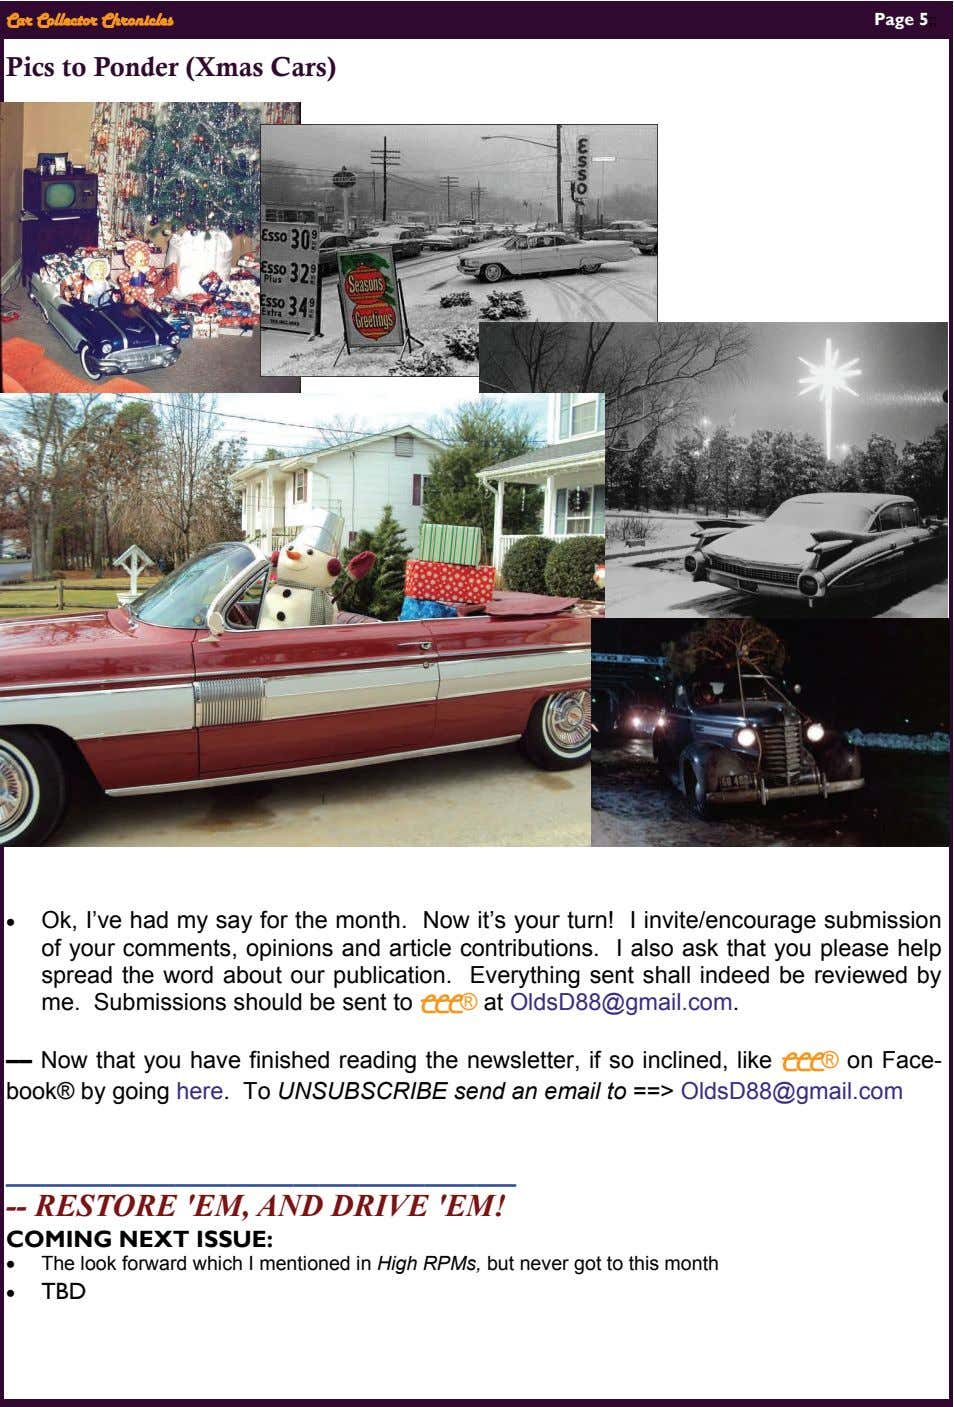 Car Collector Chronicles Page 5;; Pics to Ponder (Xmas Cars)  Ok, I've had my say